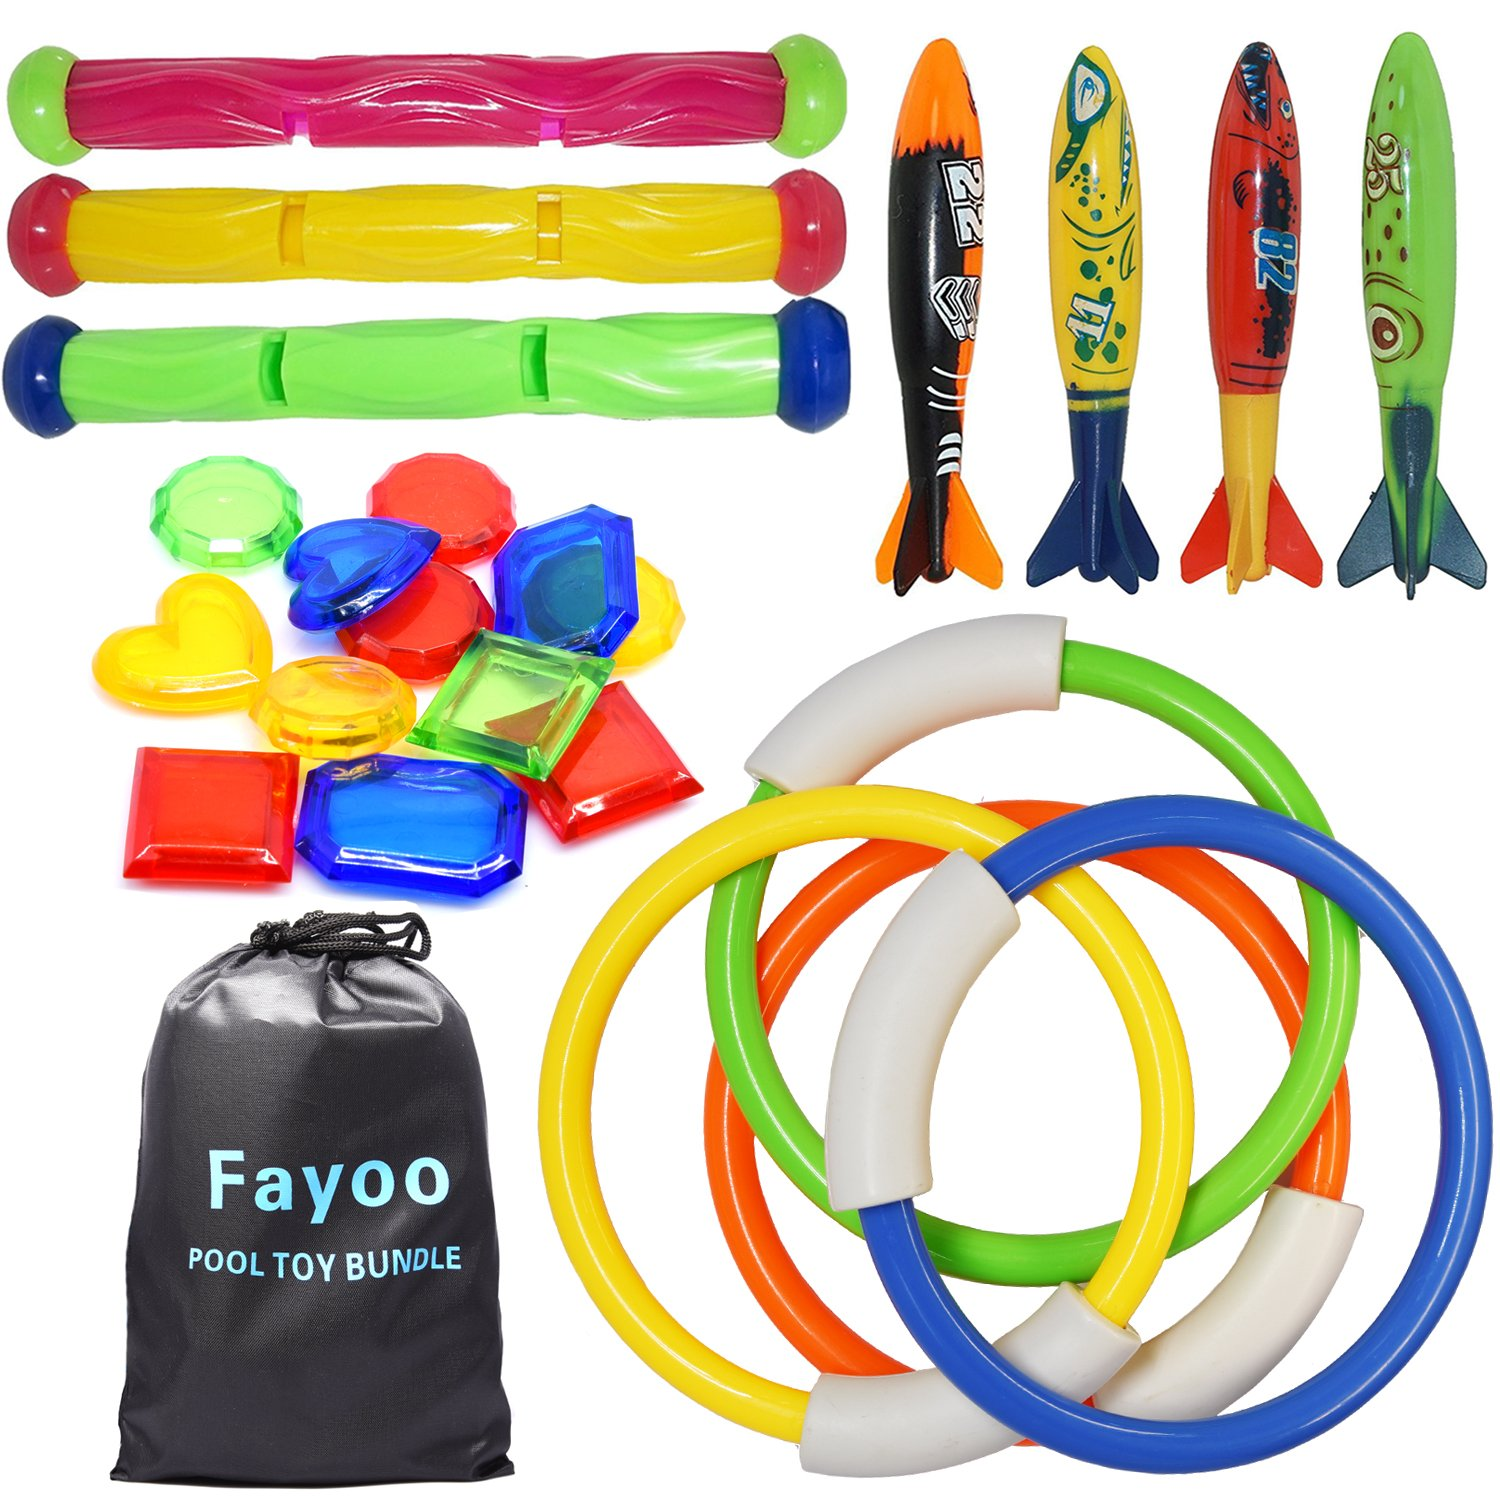 Fayoo 23 Pack Underwater Swimming/Diving Pool Toys Diving Rings(4 Pcs), Toypedo Bandits(4 Pcs), Diving Sticks(3 Pcs) with Under Water Treasures (12 Pcs) best summer water toys